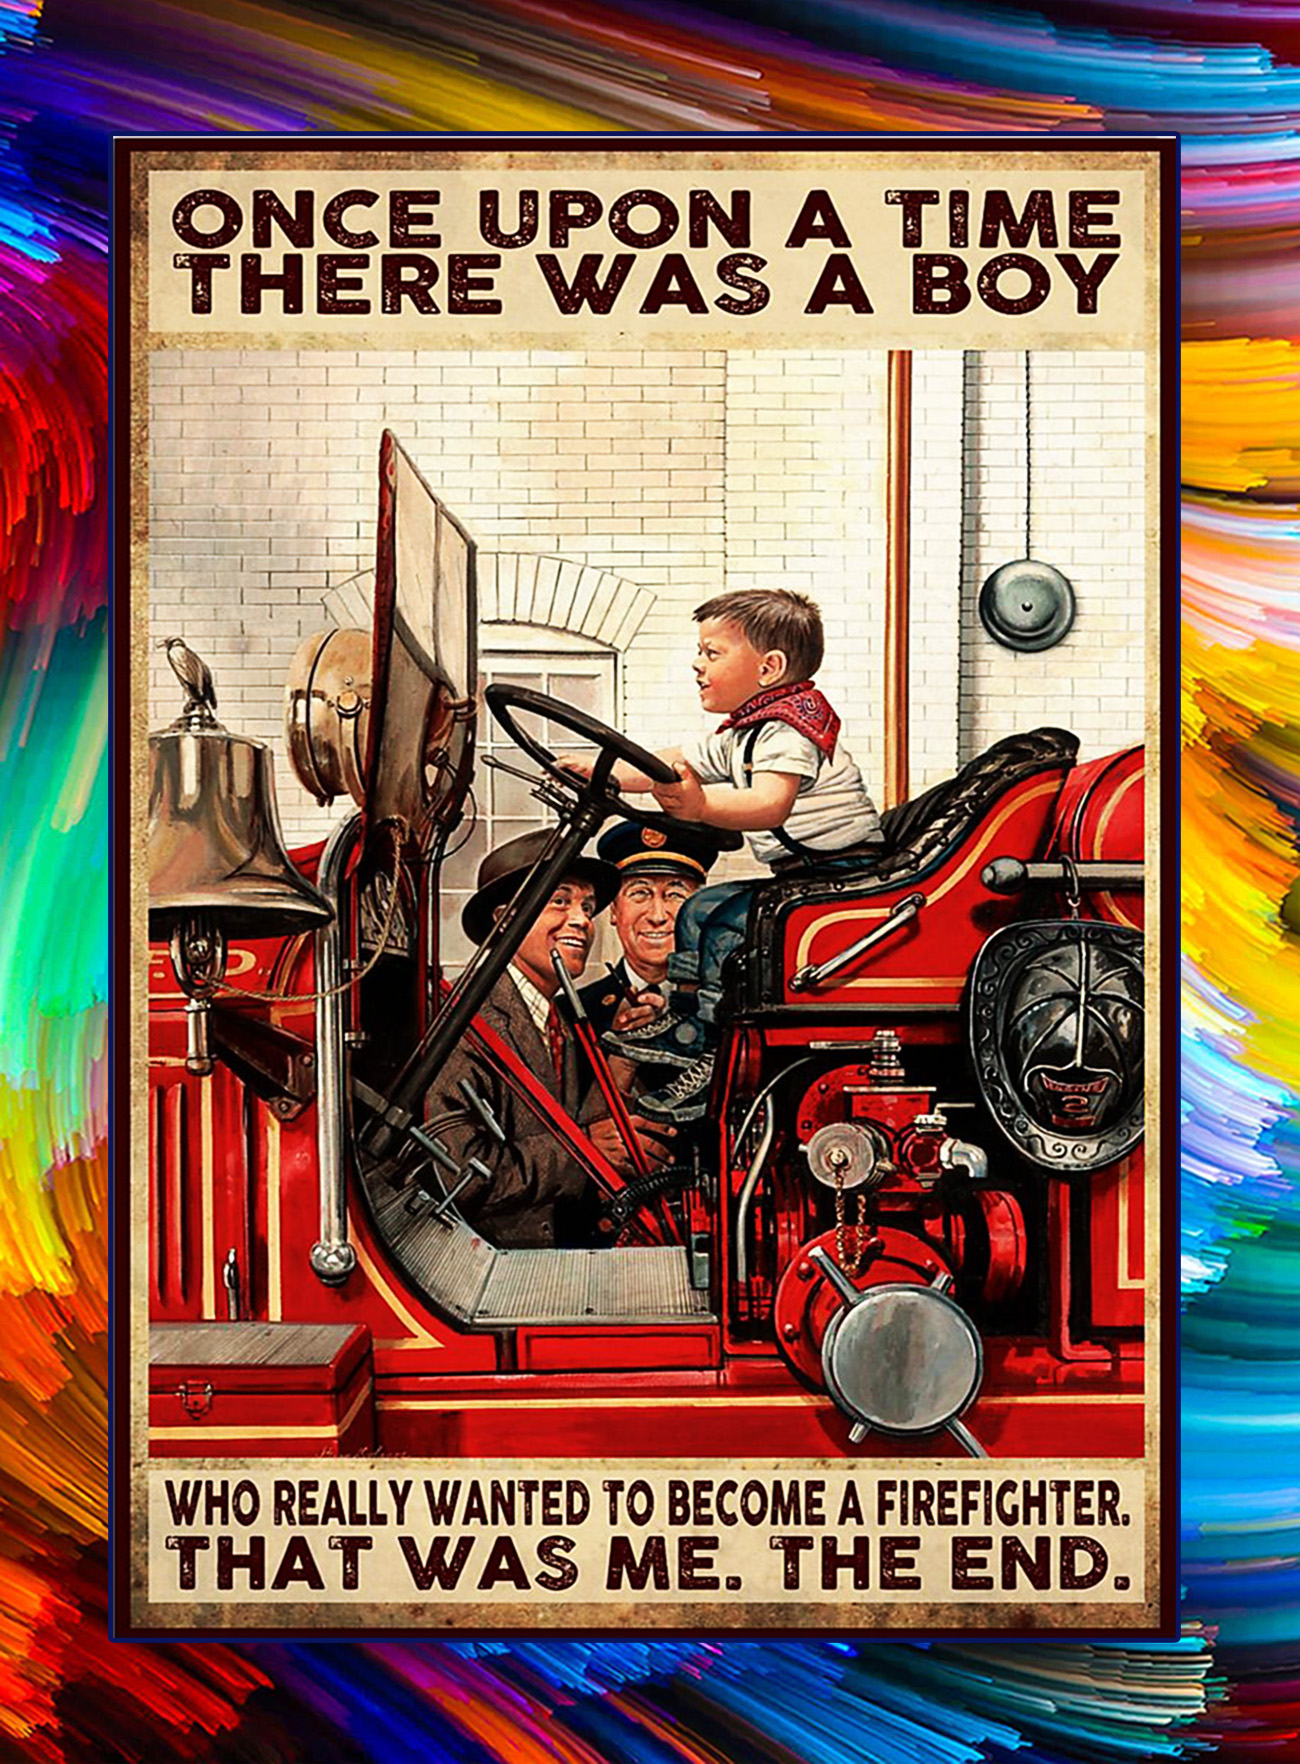 Once upon a time there was a boy who really wanted to become a firefighter poster - A1